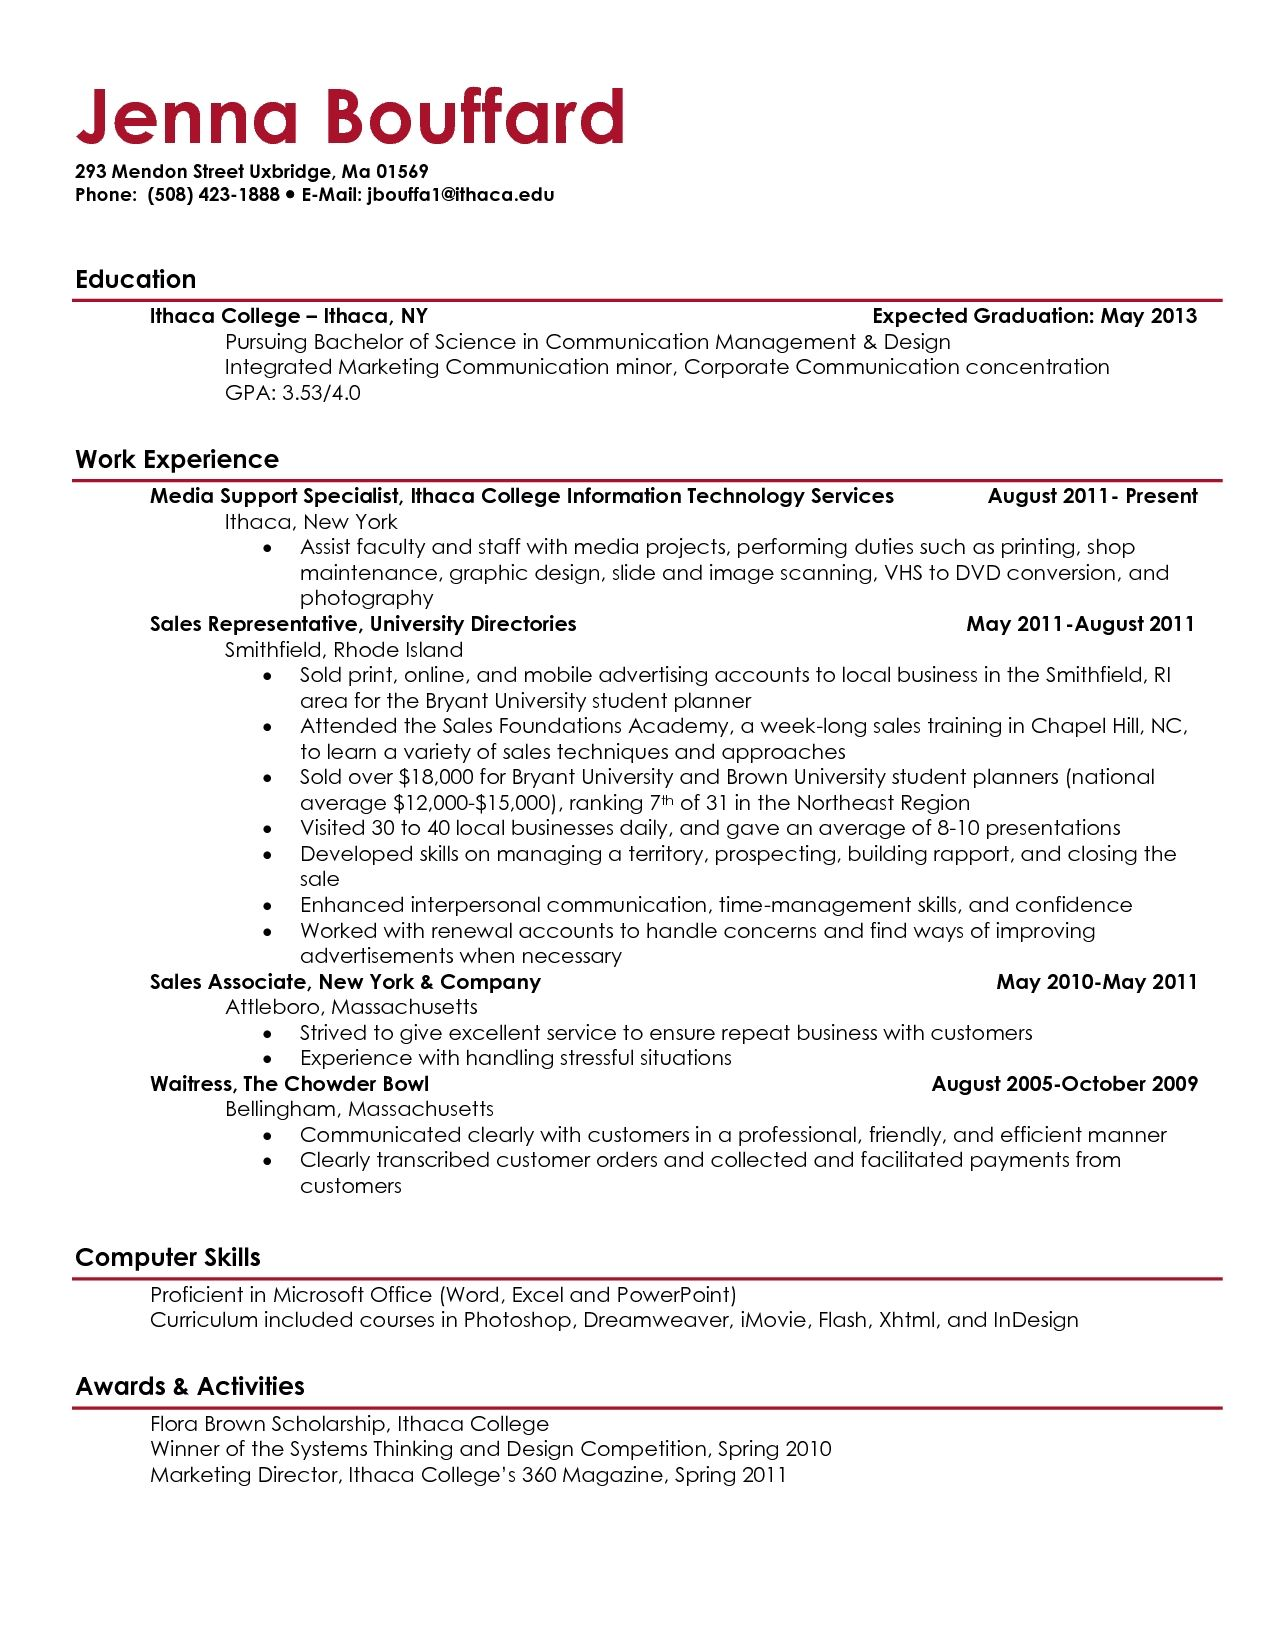 Charming Example Of Resume For College Student